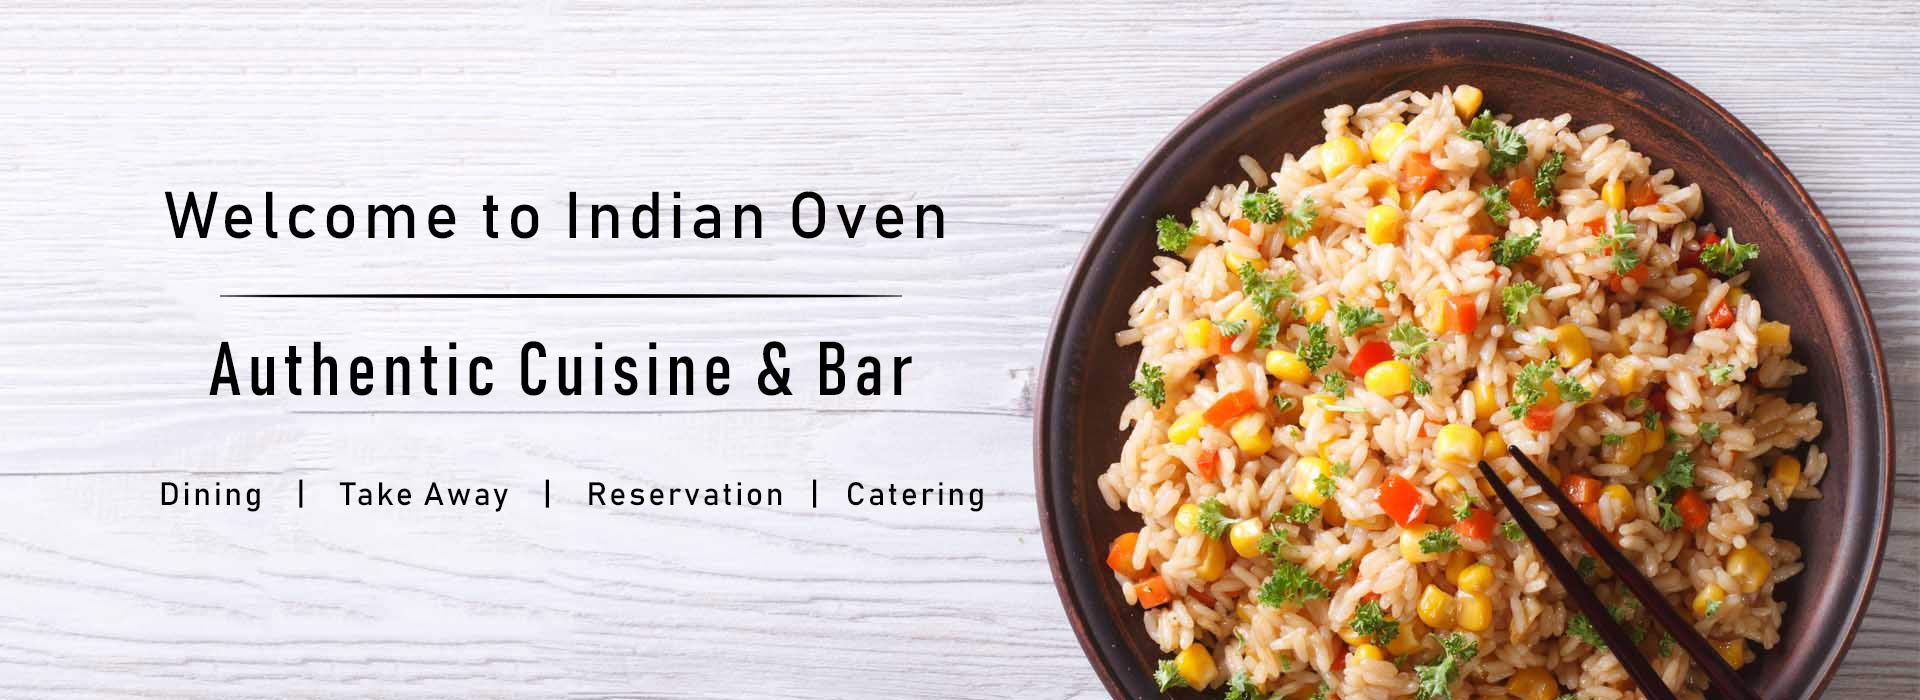 indian-oven-authentic-cuisine-and-bar-australia